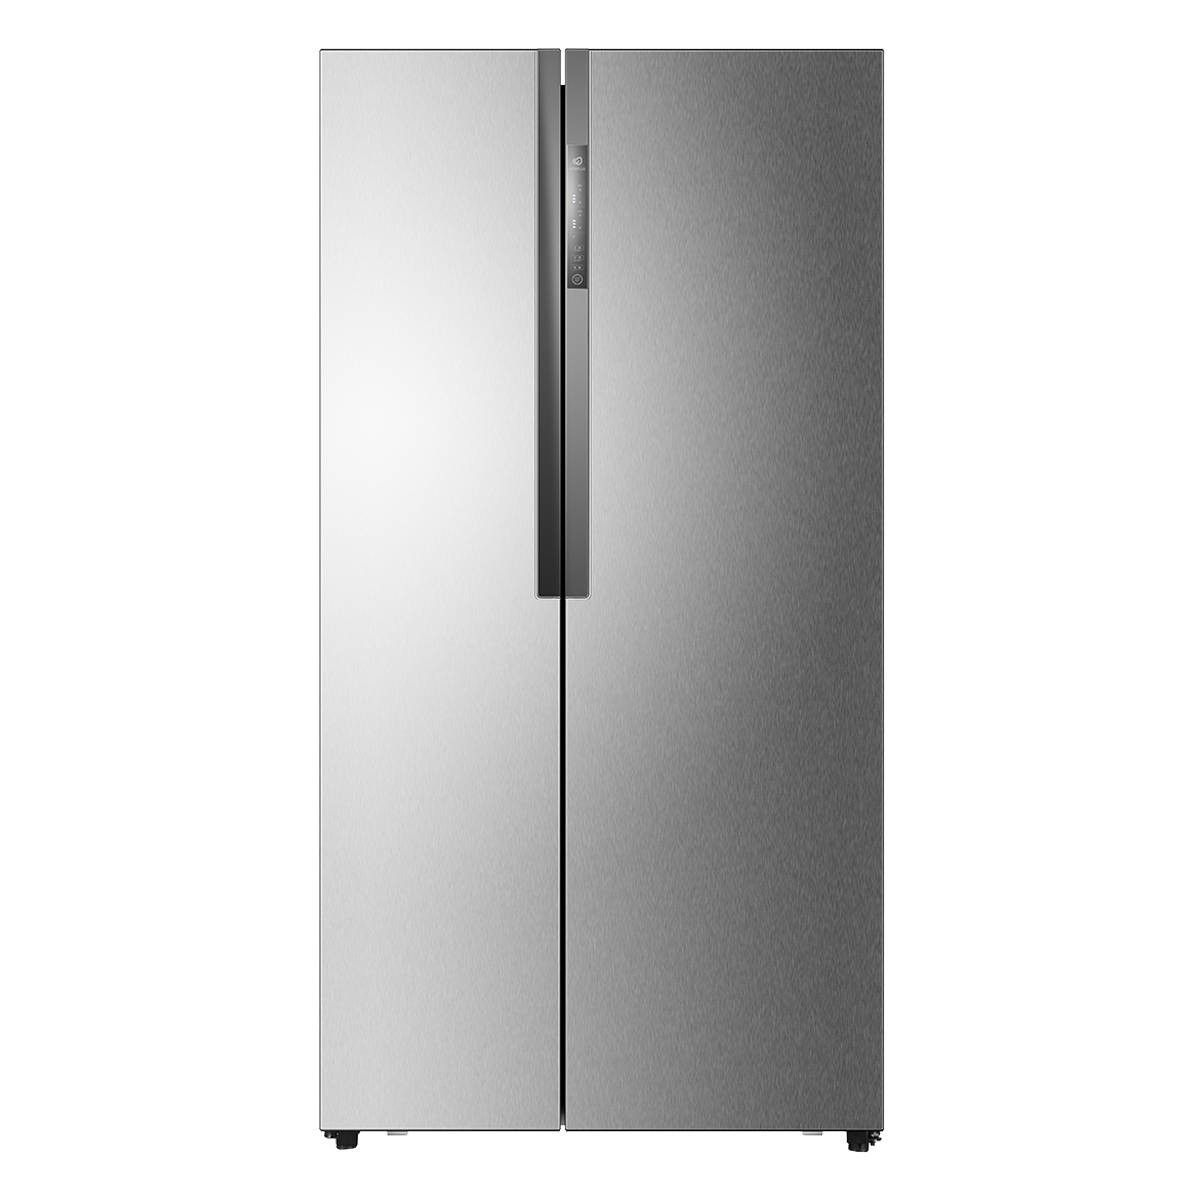 Haier Hrf 521dm6 Freestanding 518l A Stainless Steel Side By Side